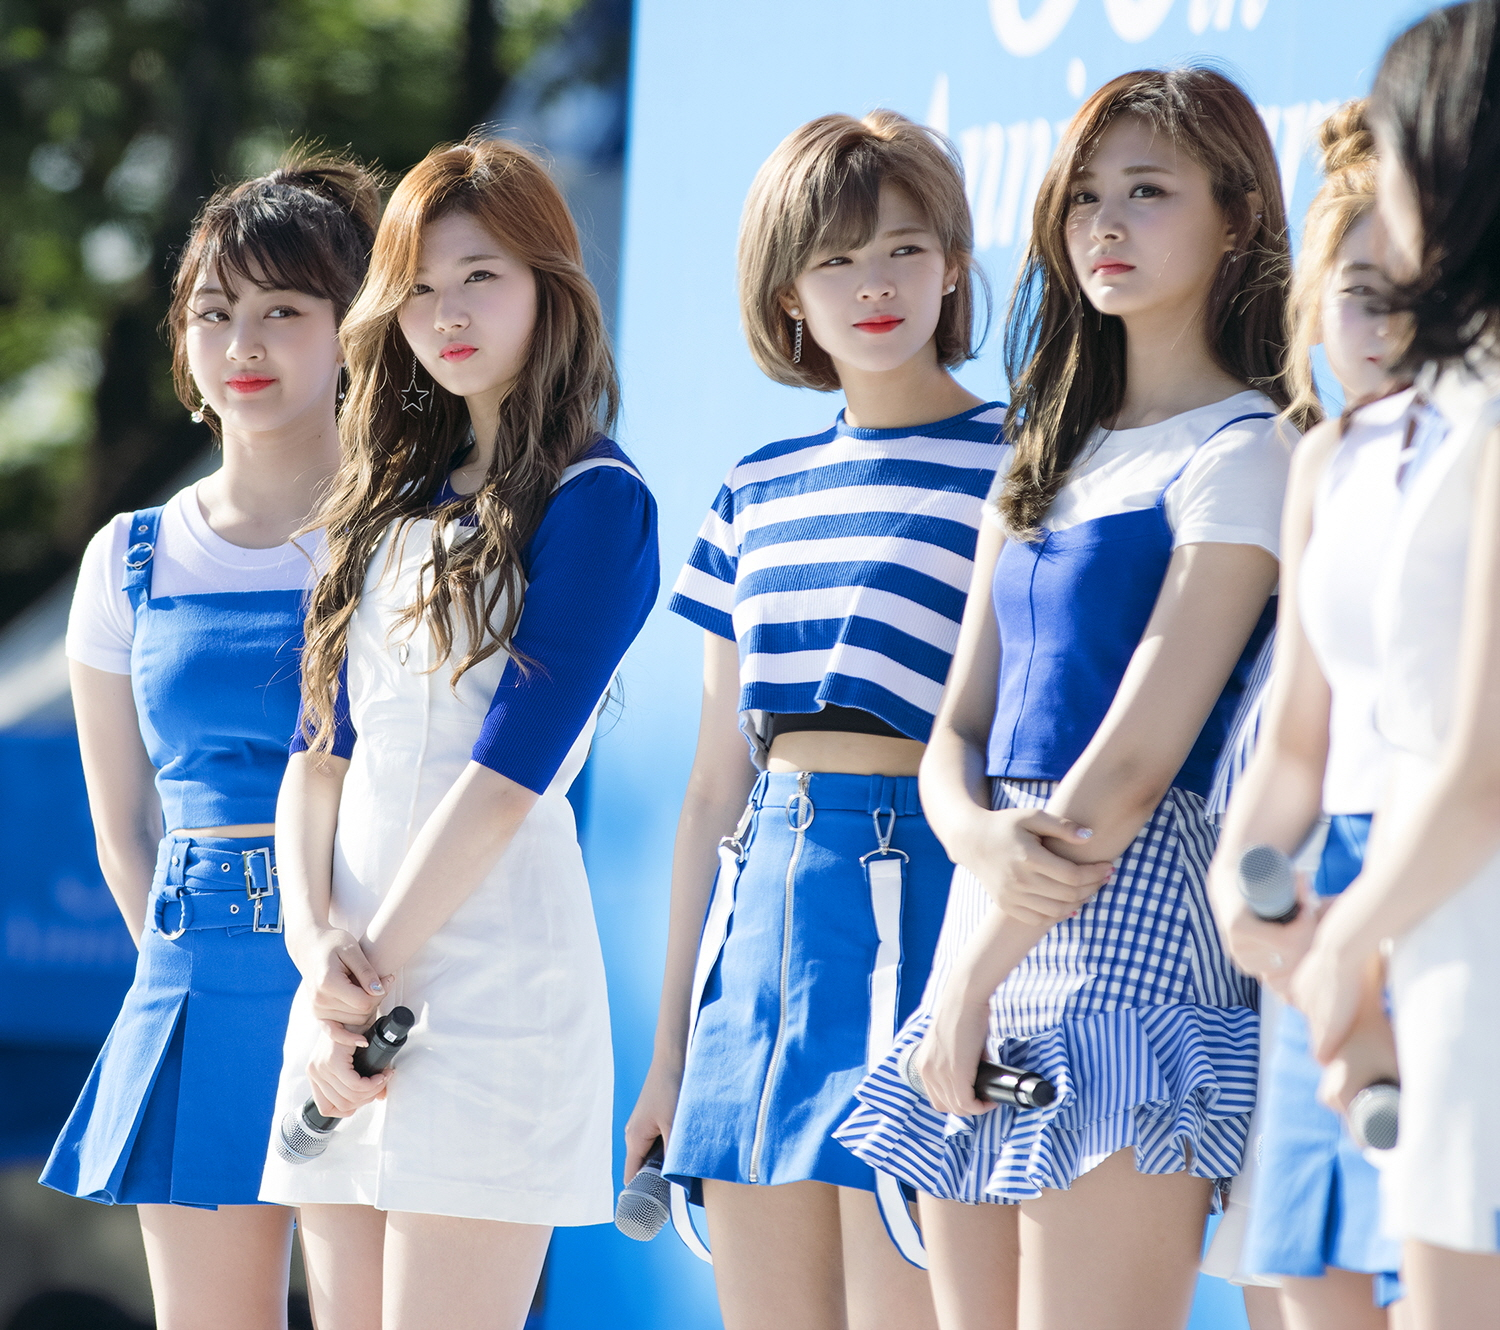 Twice in an event for Pocari Sweat in May 2017